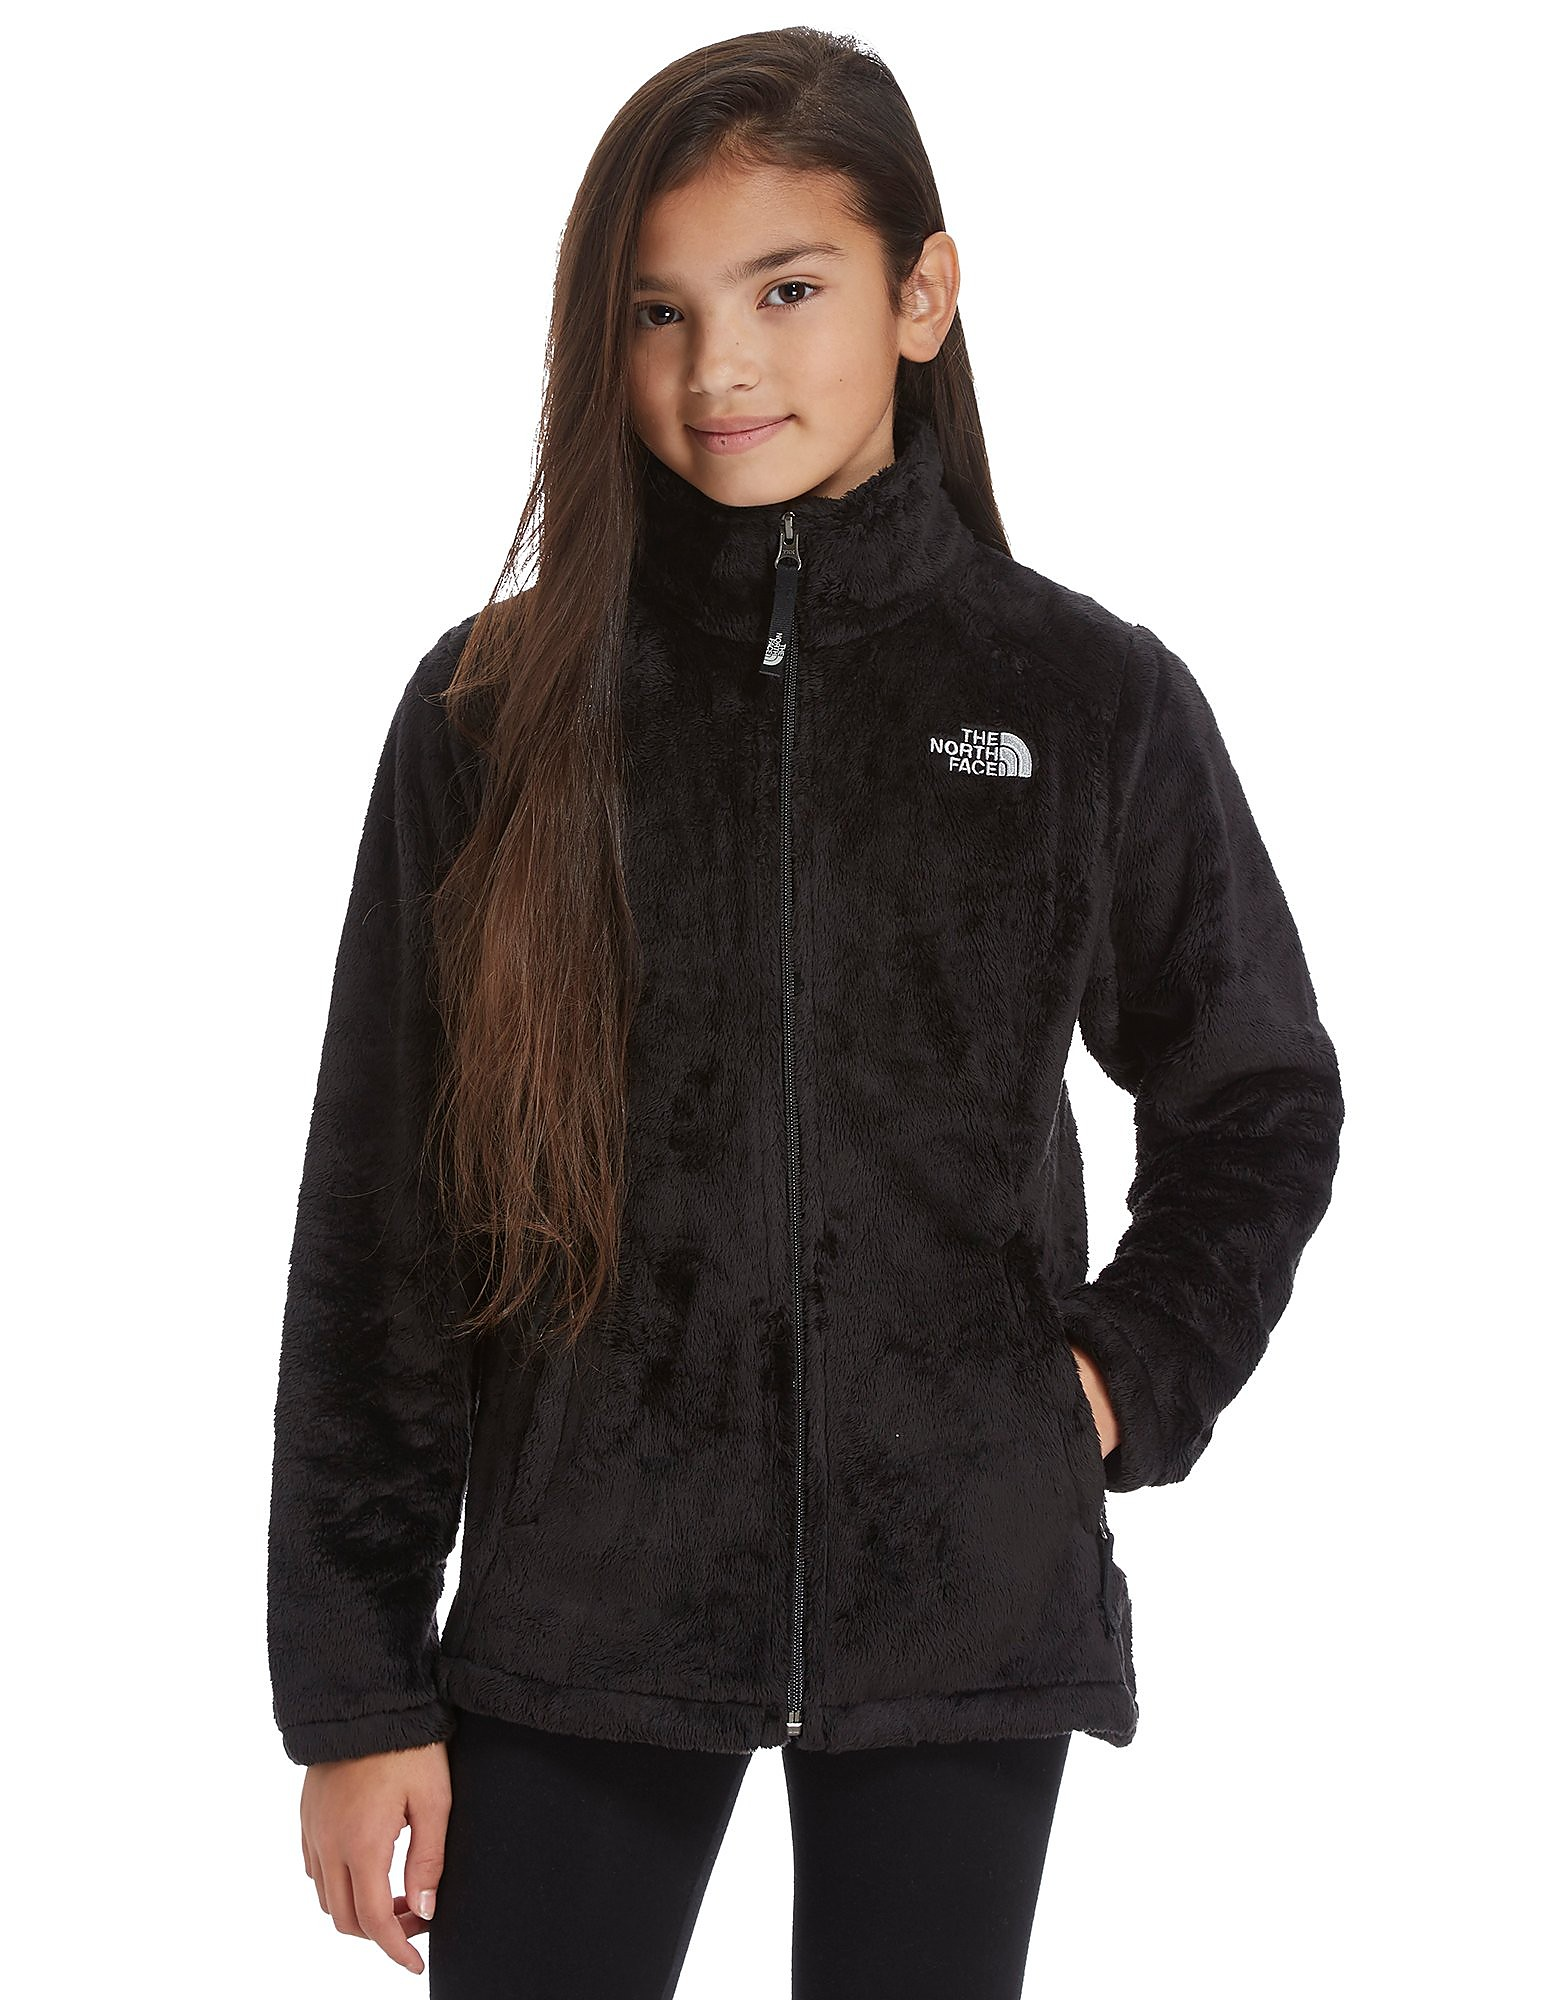 The North Face Osolita Furry Giacca a Vento Donna